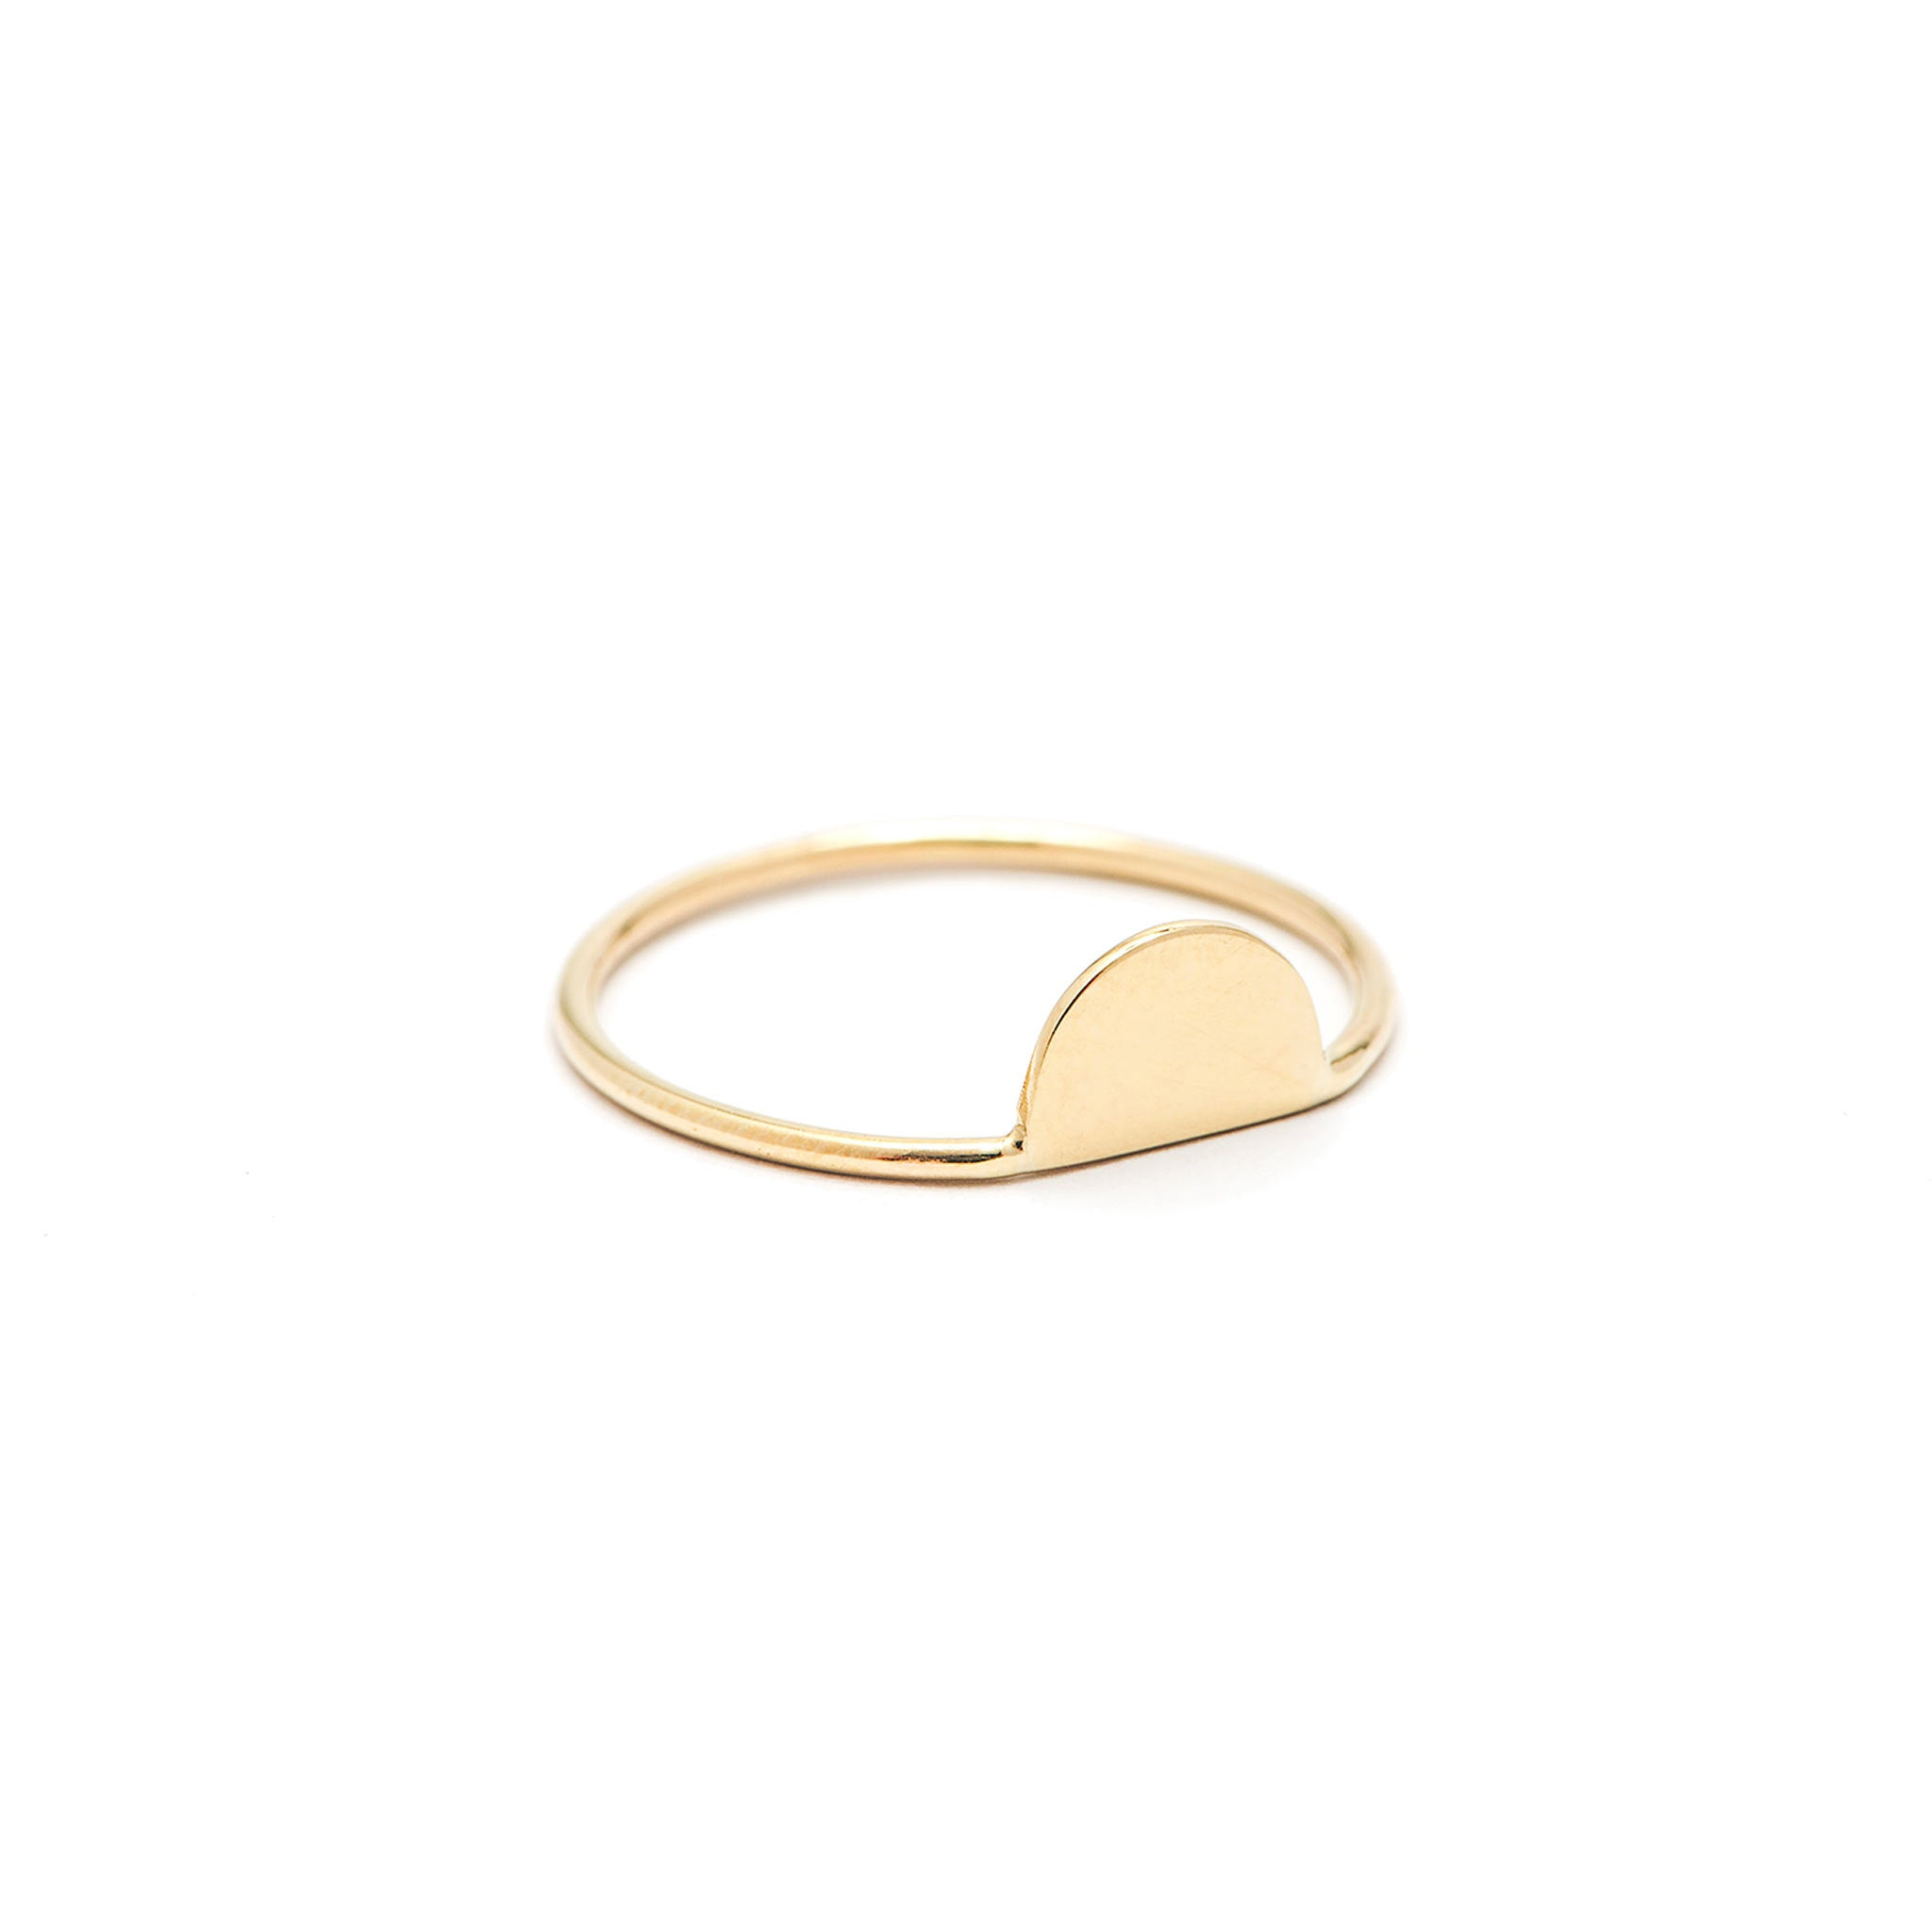 14k solid gold half moon ring